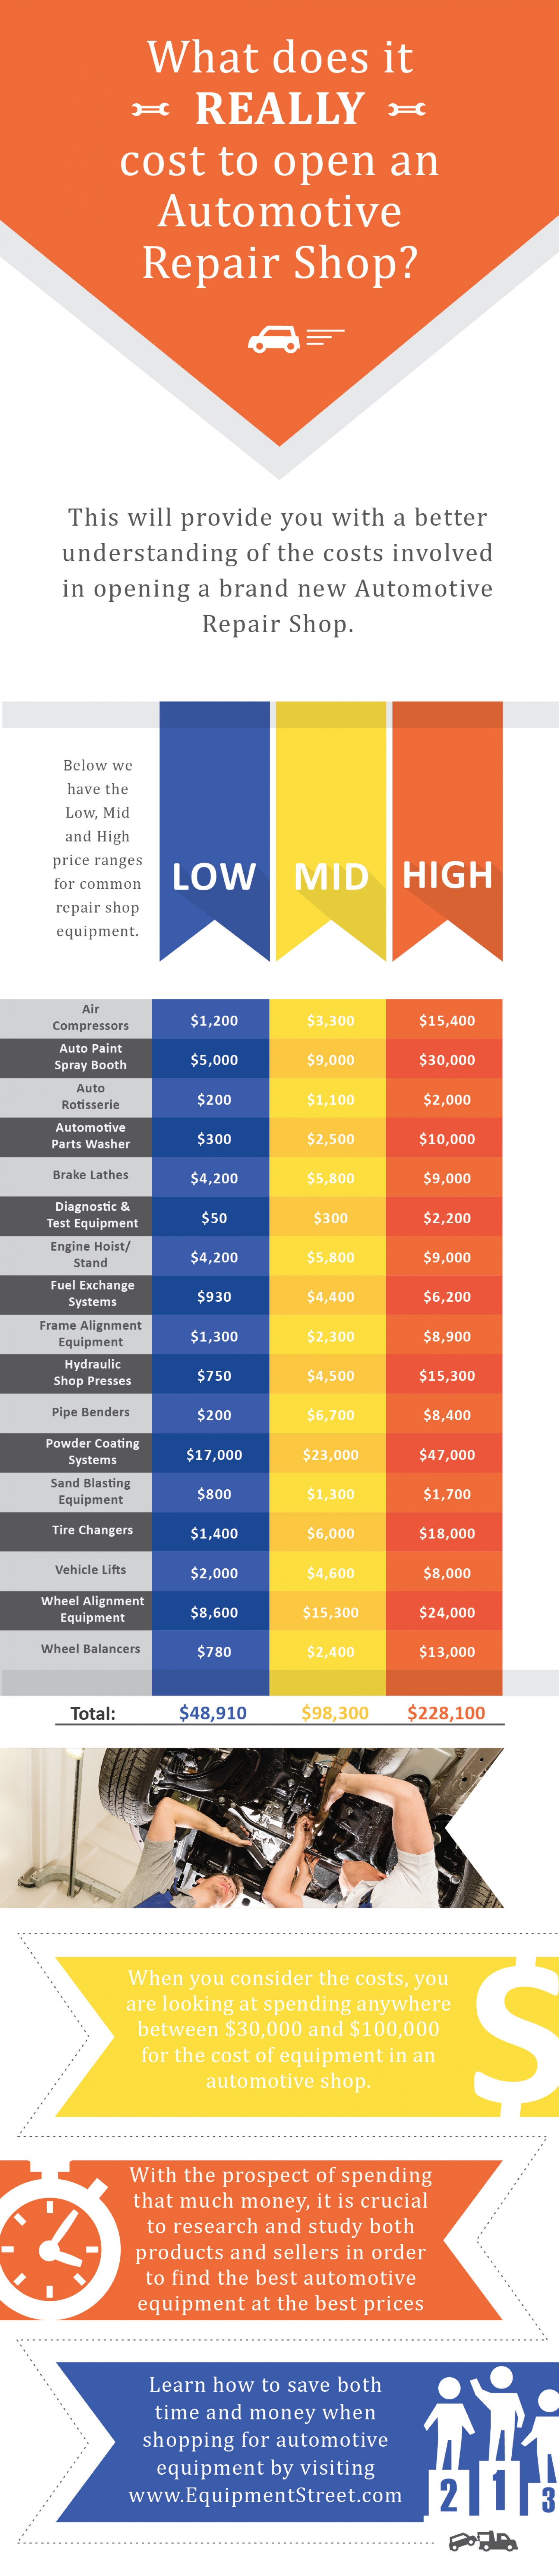 What Does it Really Cost to Start Up a Repair Shop? Infographic